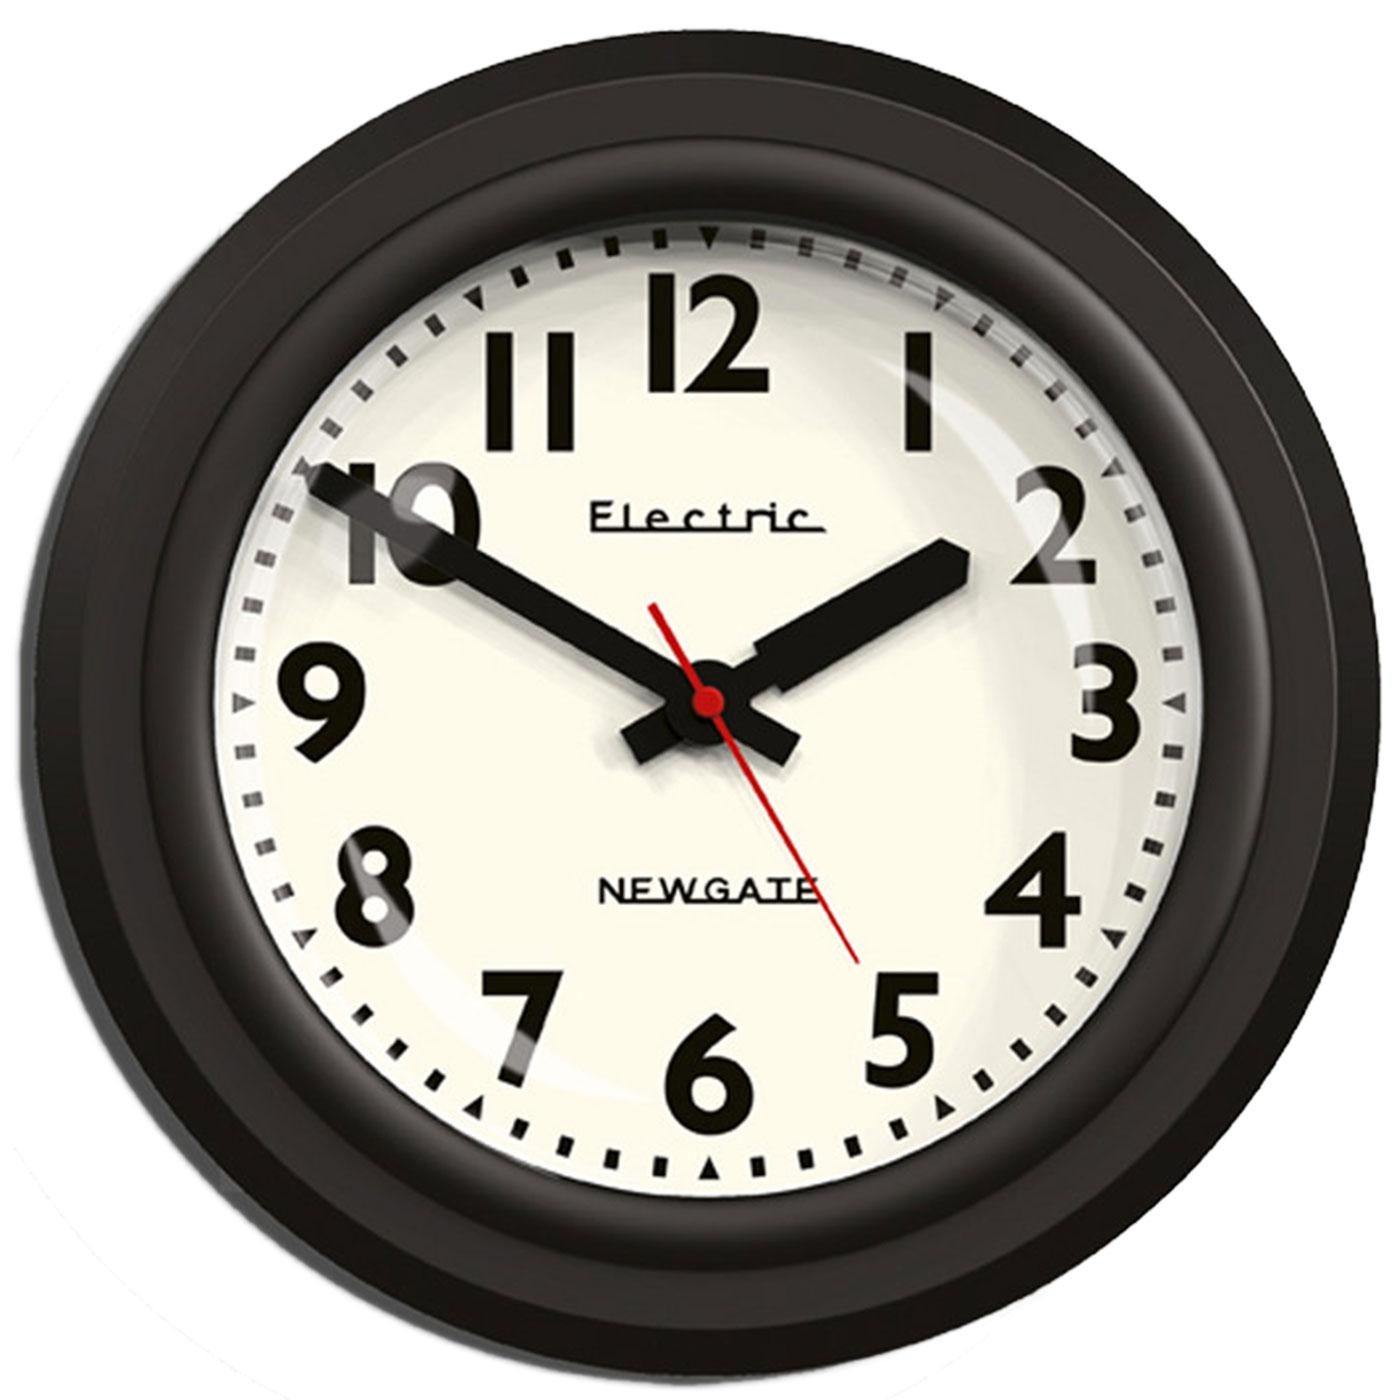 The Telelectric NEWGATE CLOCKS Retro 50s Clock Blk